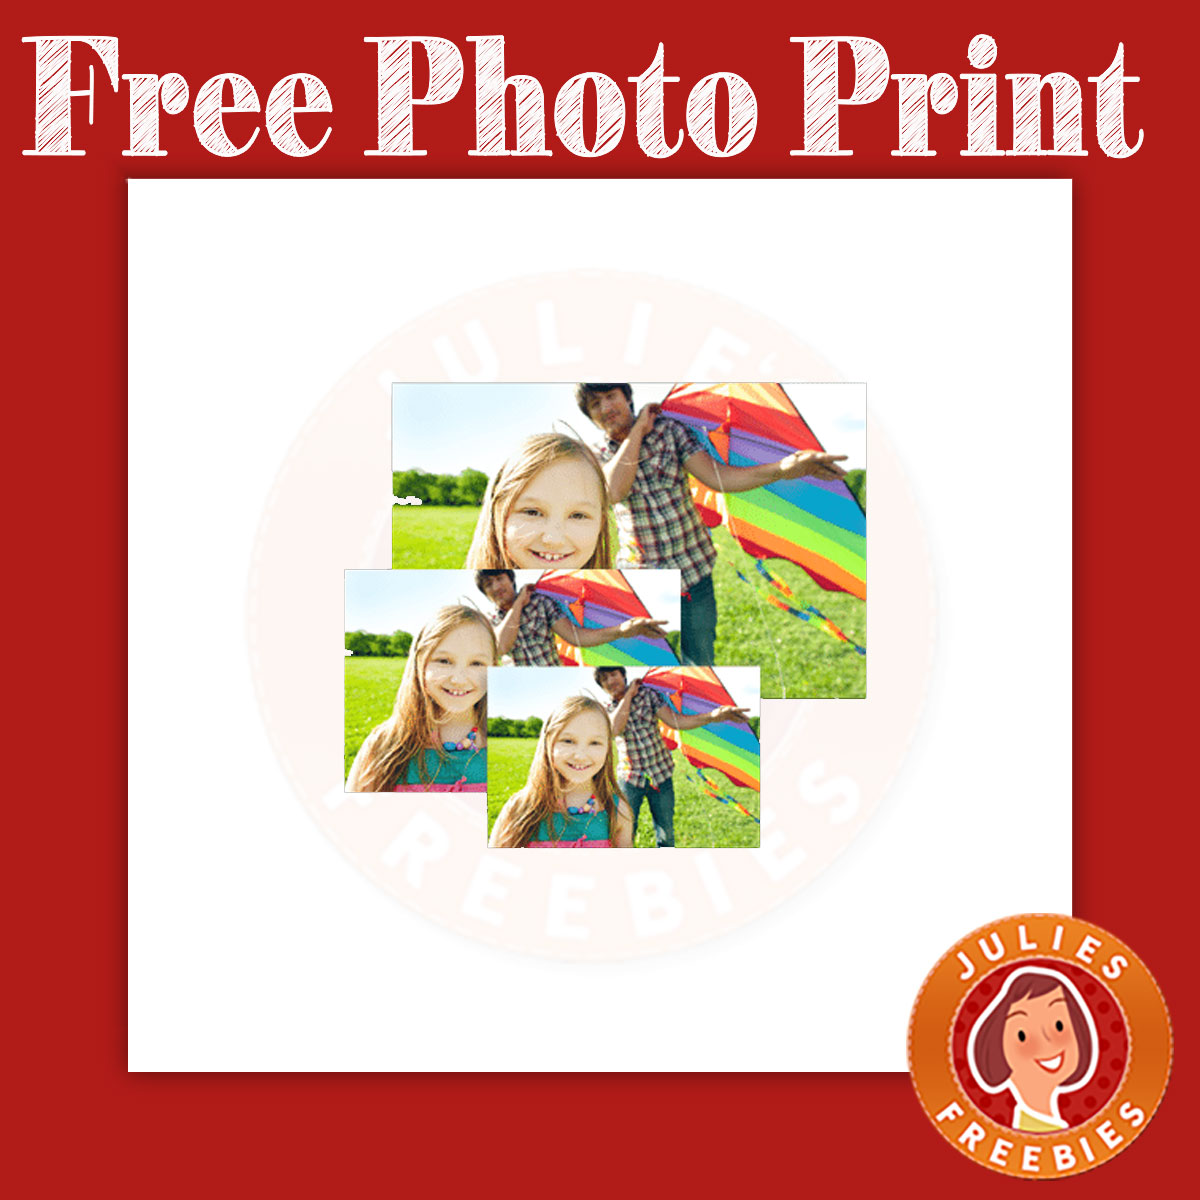 Order online and pick up the same day at Walgreens. Print photos and create personalized photo books, photo cards, invitations and custom photo gifts.